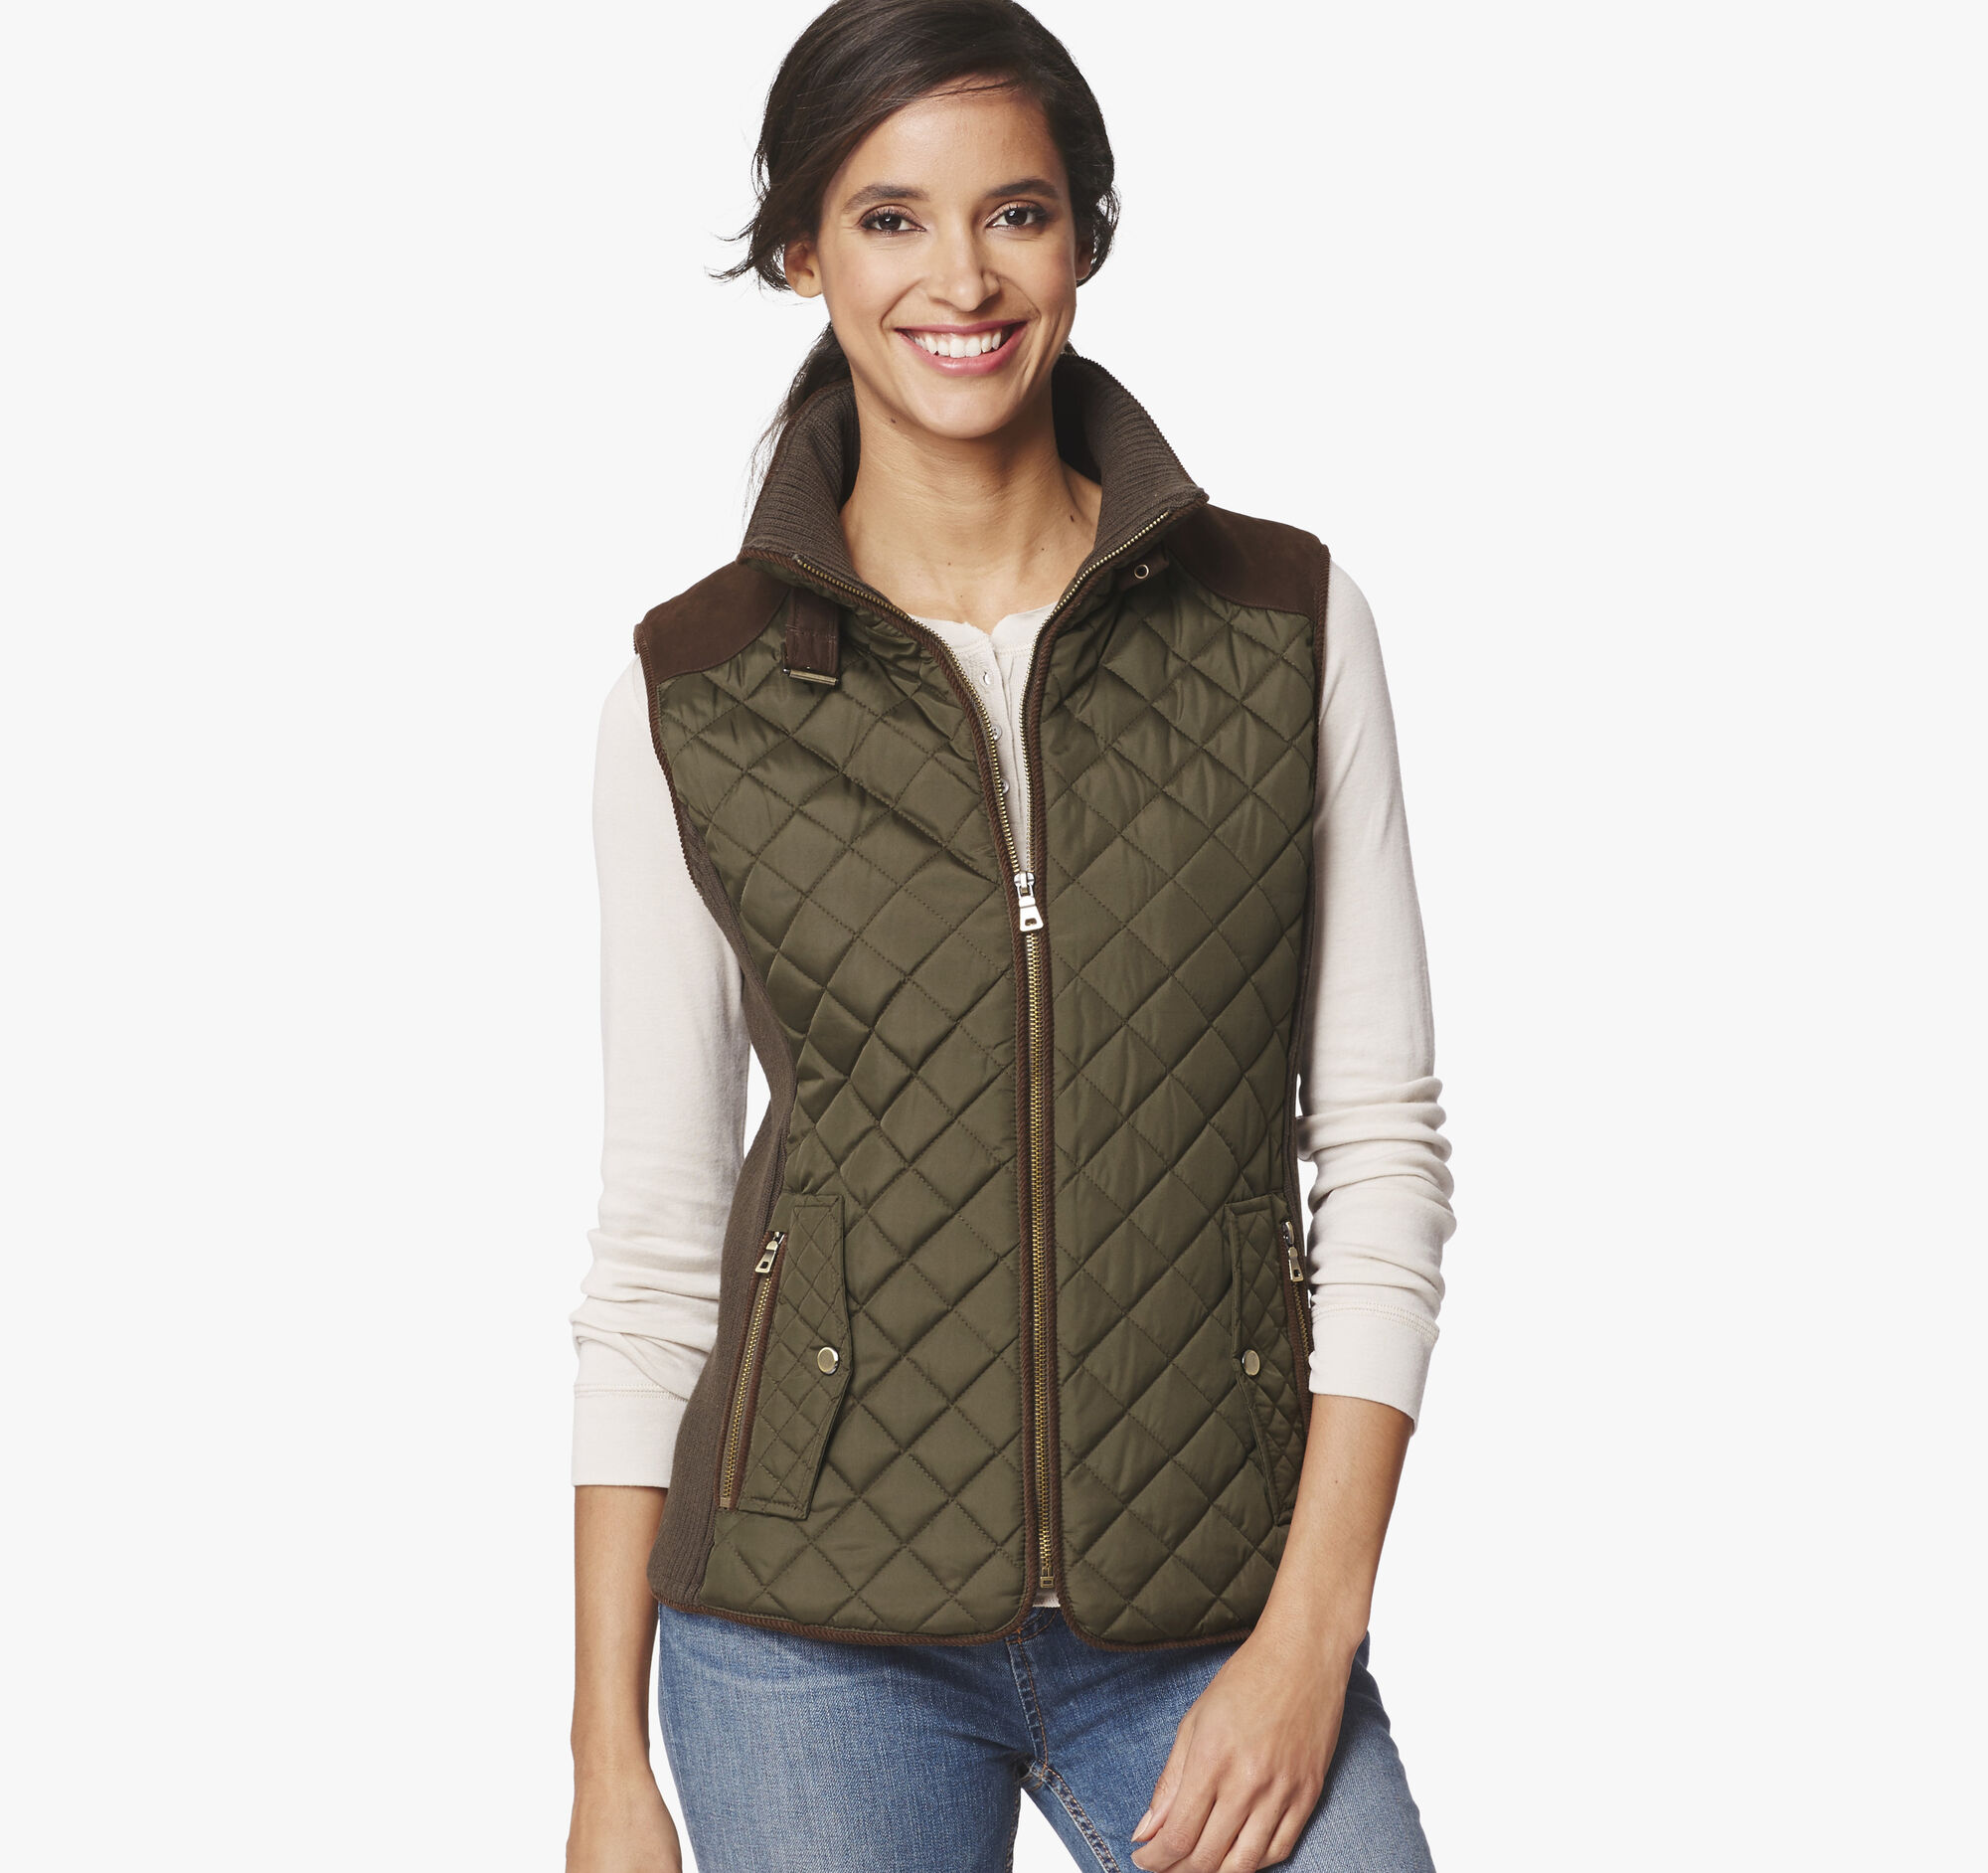 This quilted vest will have you in love with layering. A stand collar and zip front keeps you nice and cozy while princess seams create a flattering, fitted shape. Throw this on over your classic tees for an extra touch of style and warmth.